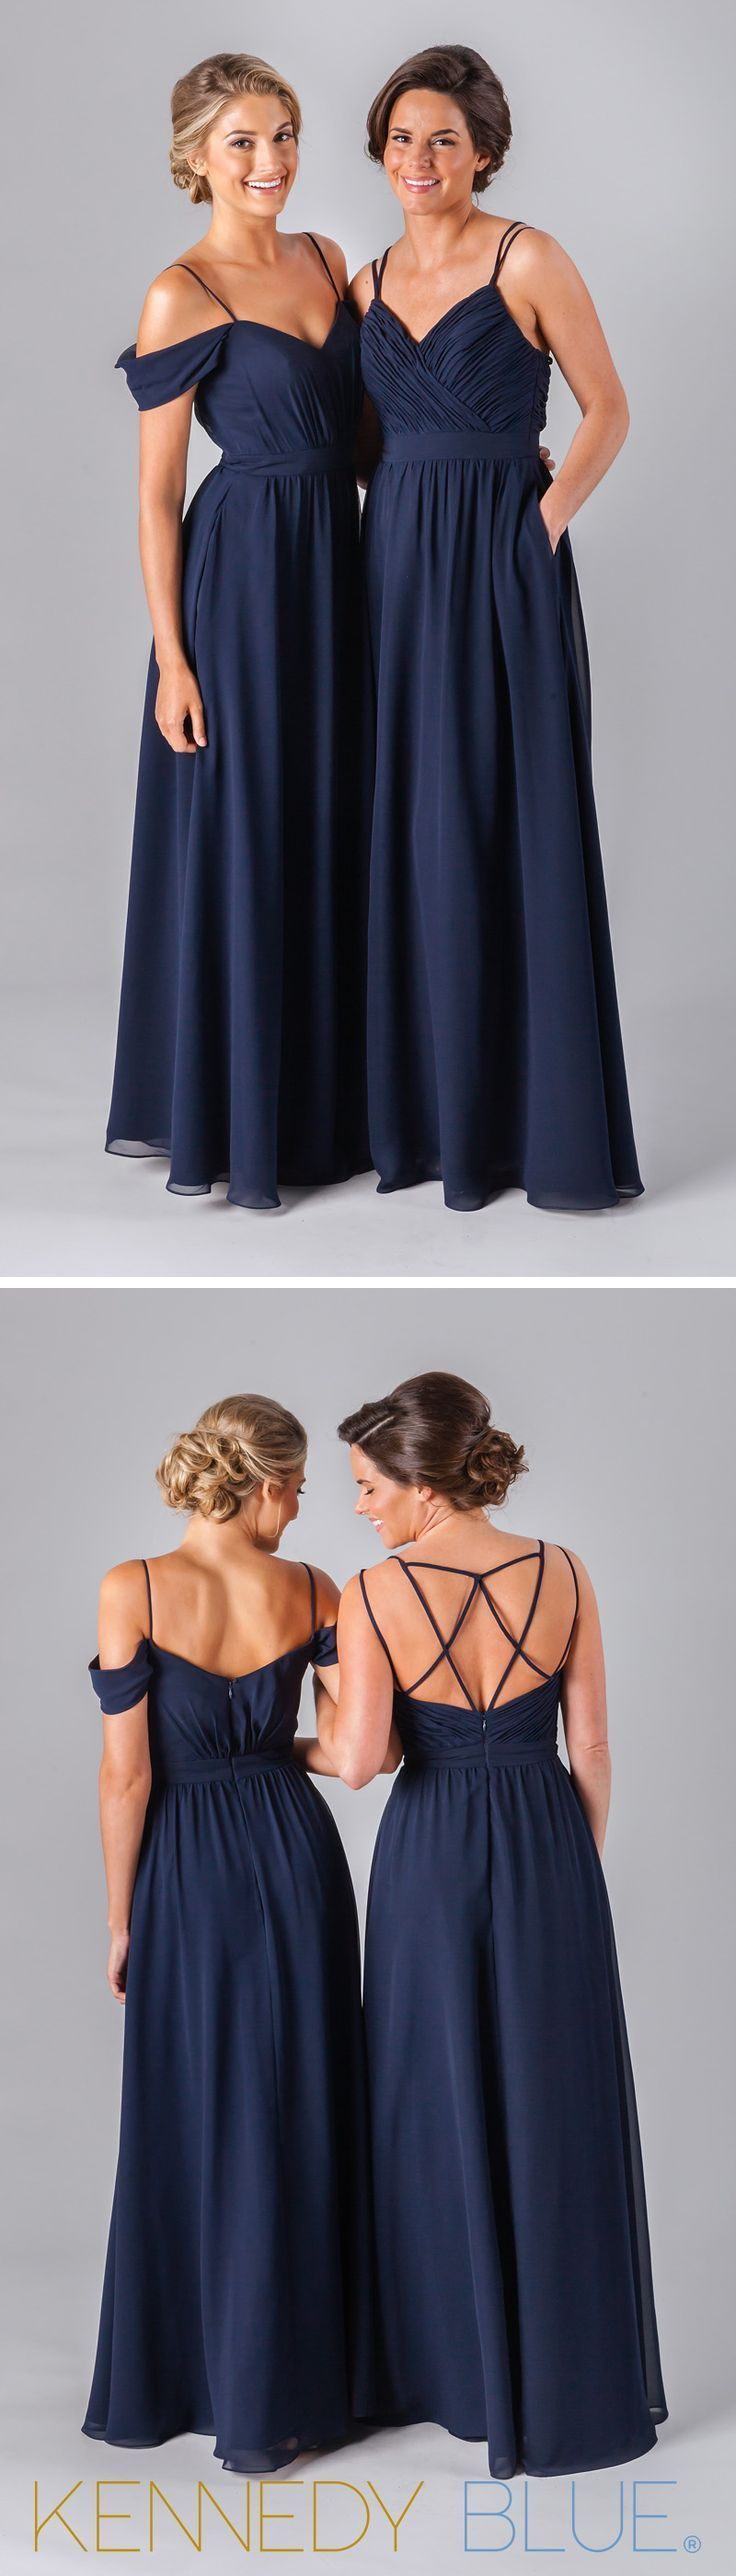 Mix and match navy blue chiffon bridesmaid dresses from kennedy blue